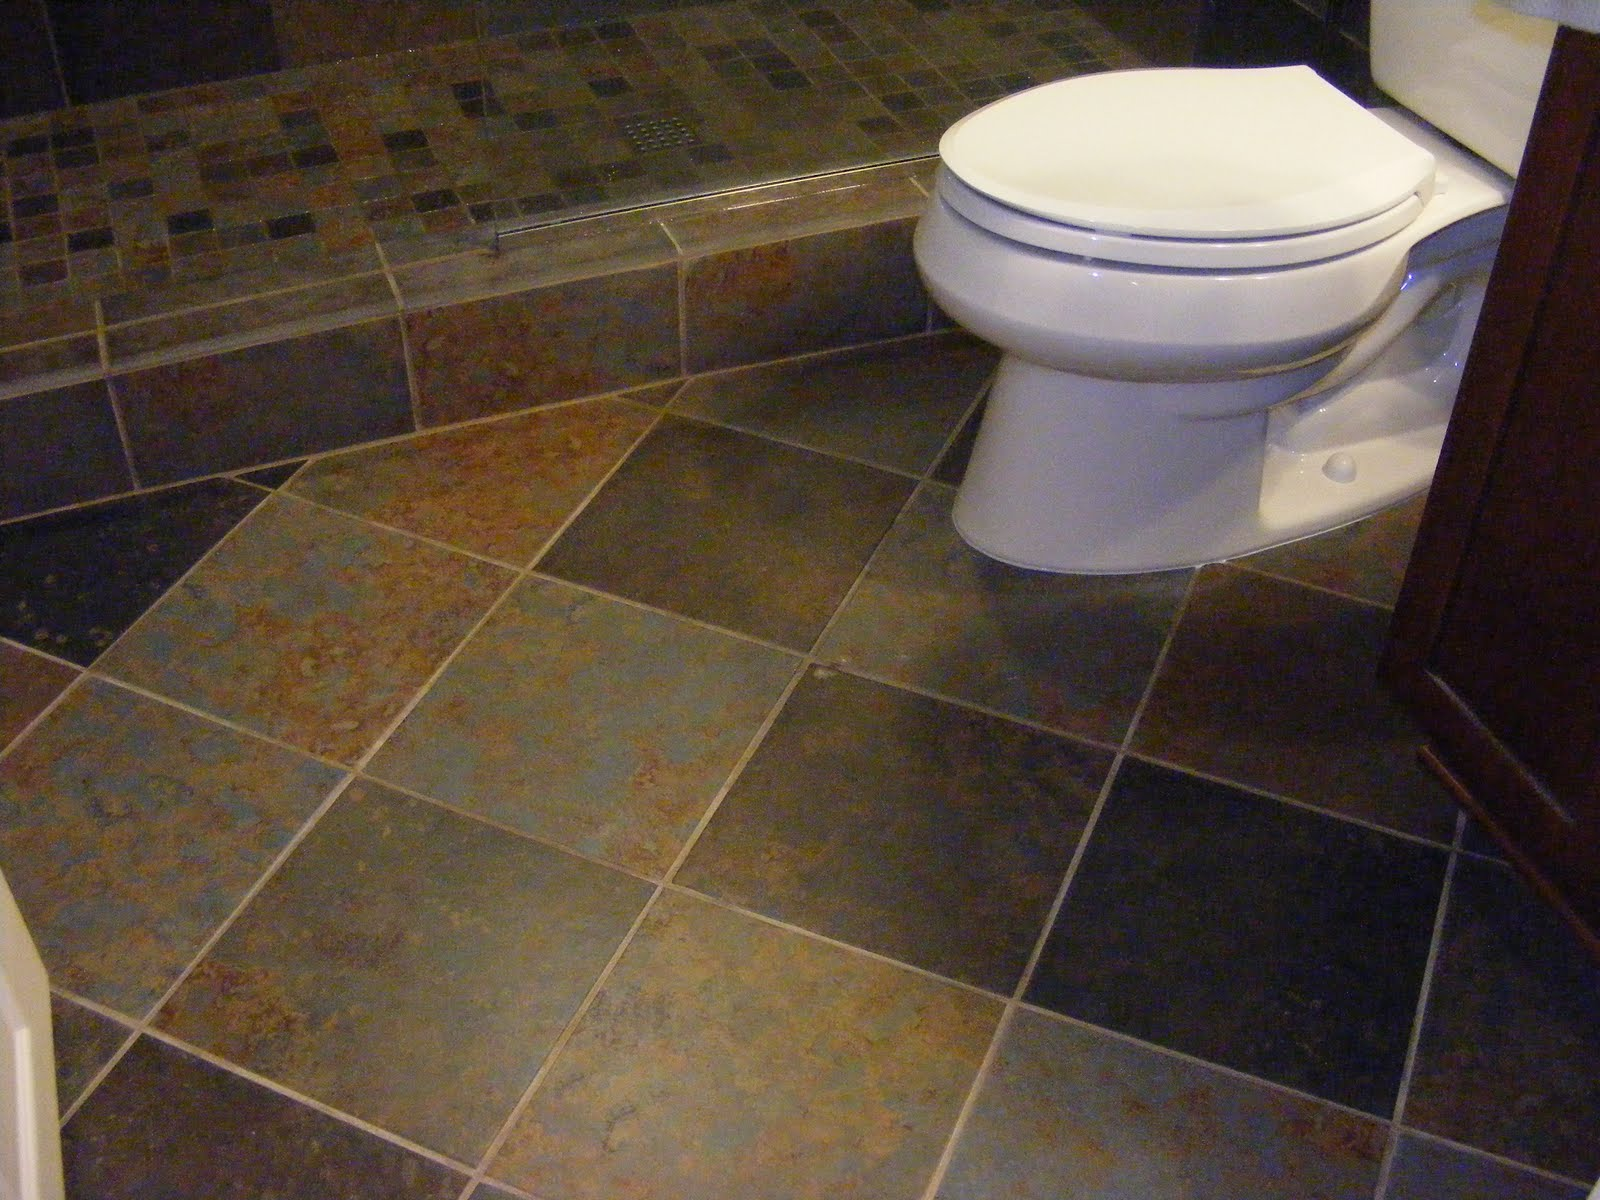 Bathroom Floor Ceramic Tile Design Ideas ~ Beautiful ideas and pictures decorative bathroom tile